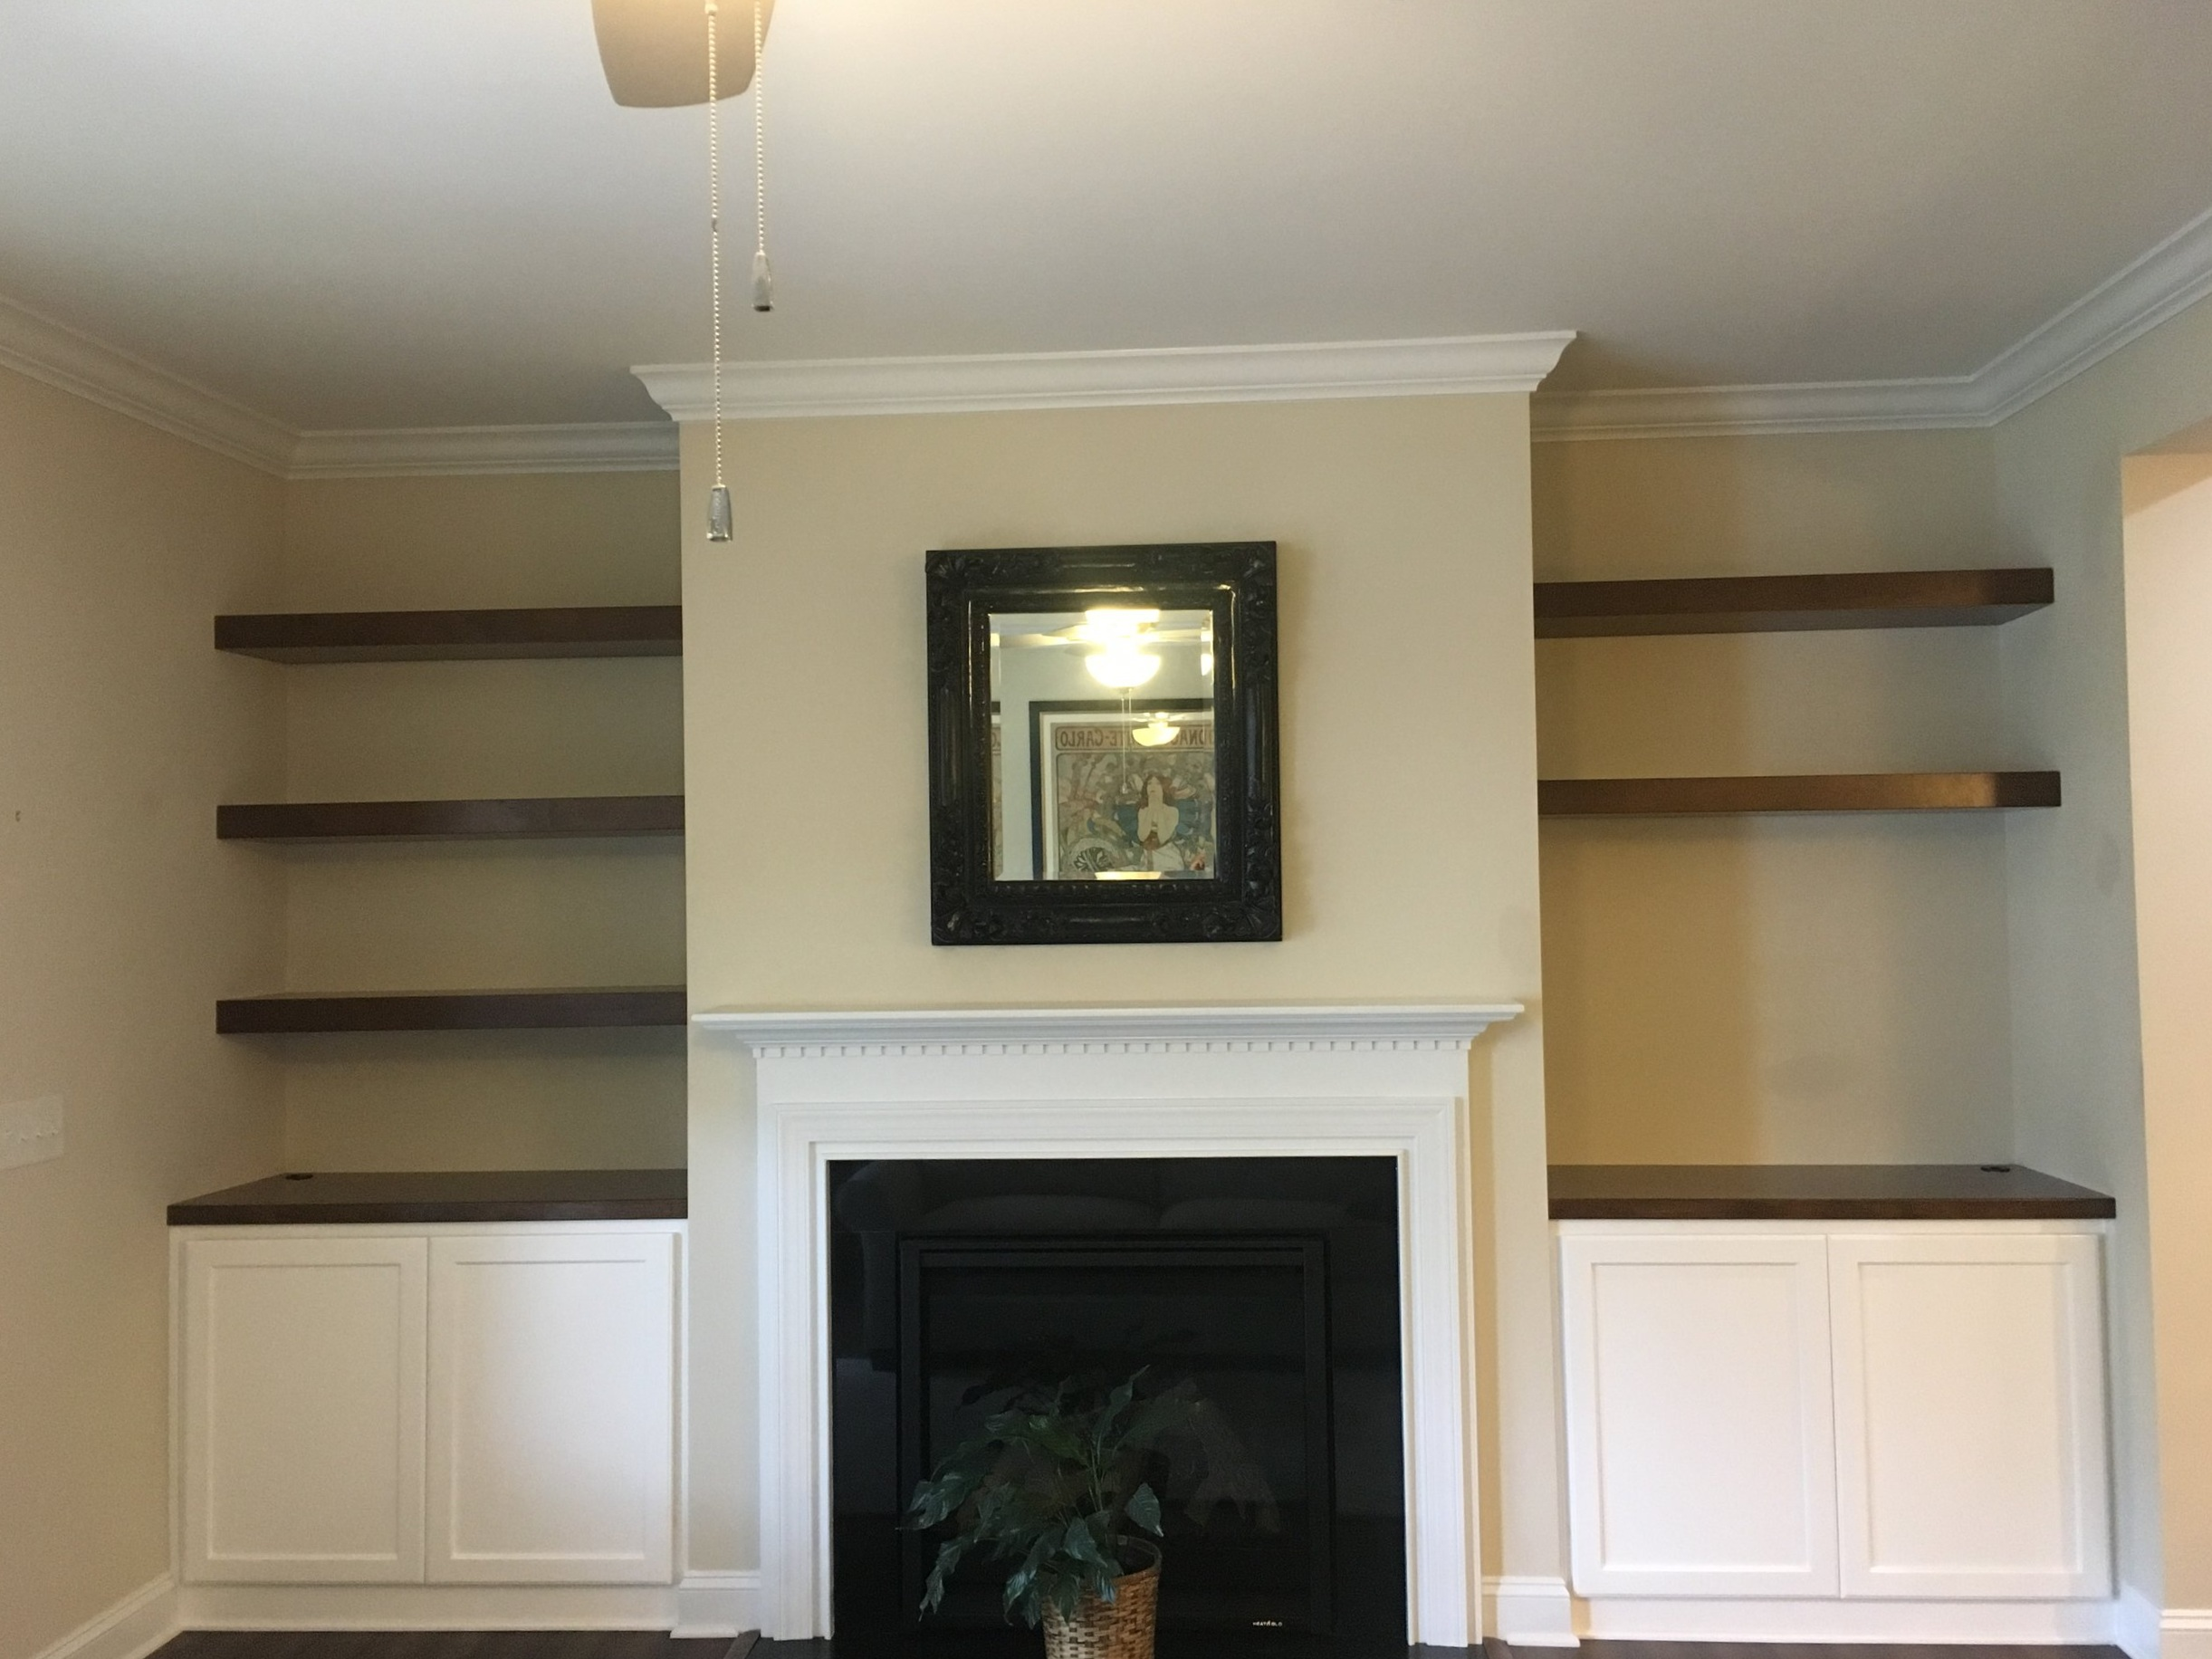 Fireplace Built-Ins with Shaker Doors, Stain Countertops, and Stain Floating Shelves